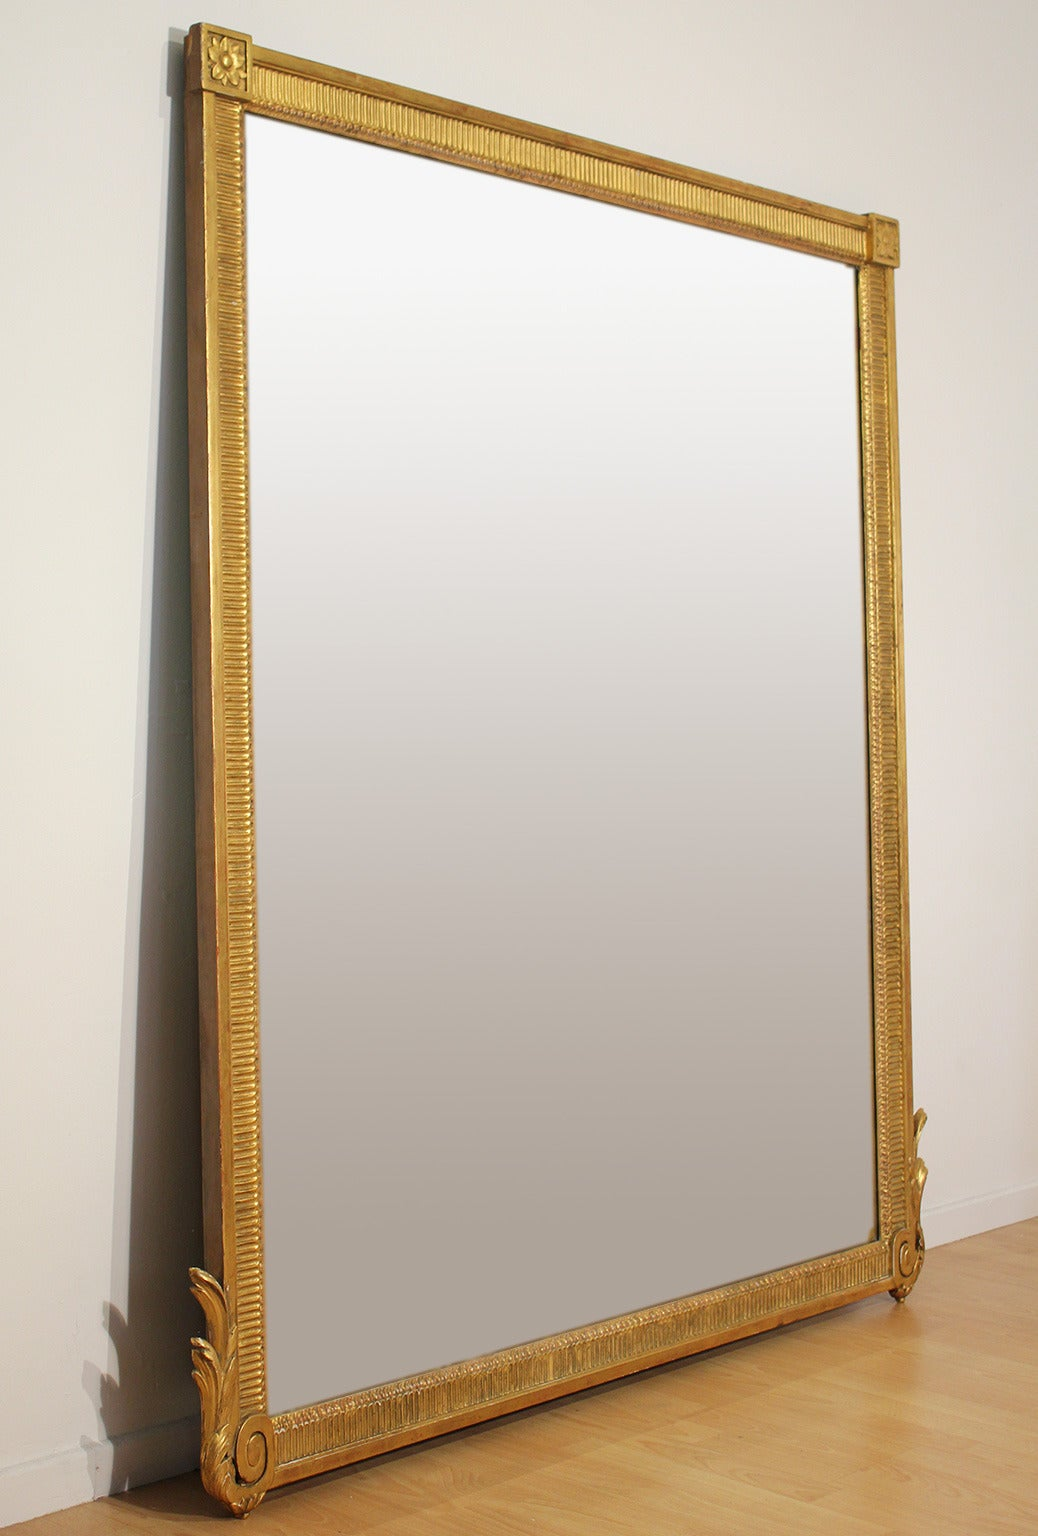 Large Antique French Neoclassical Decorative Gold Framed